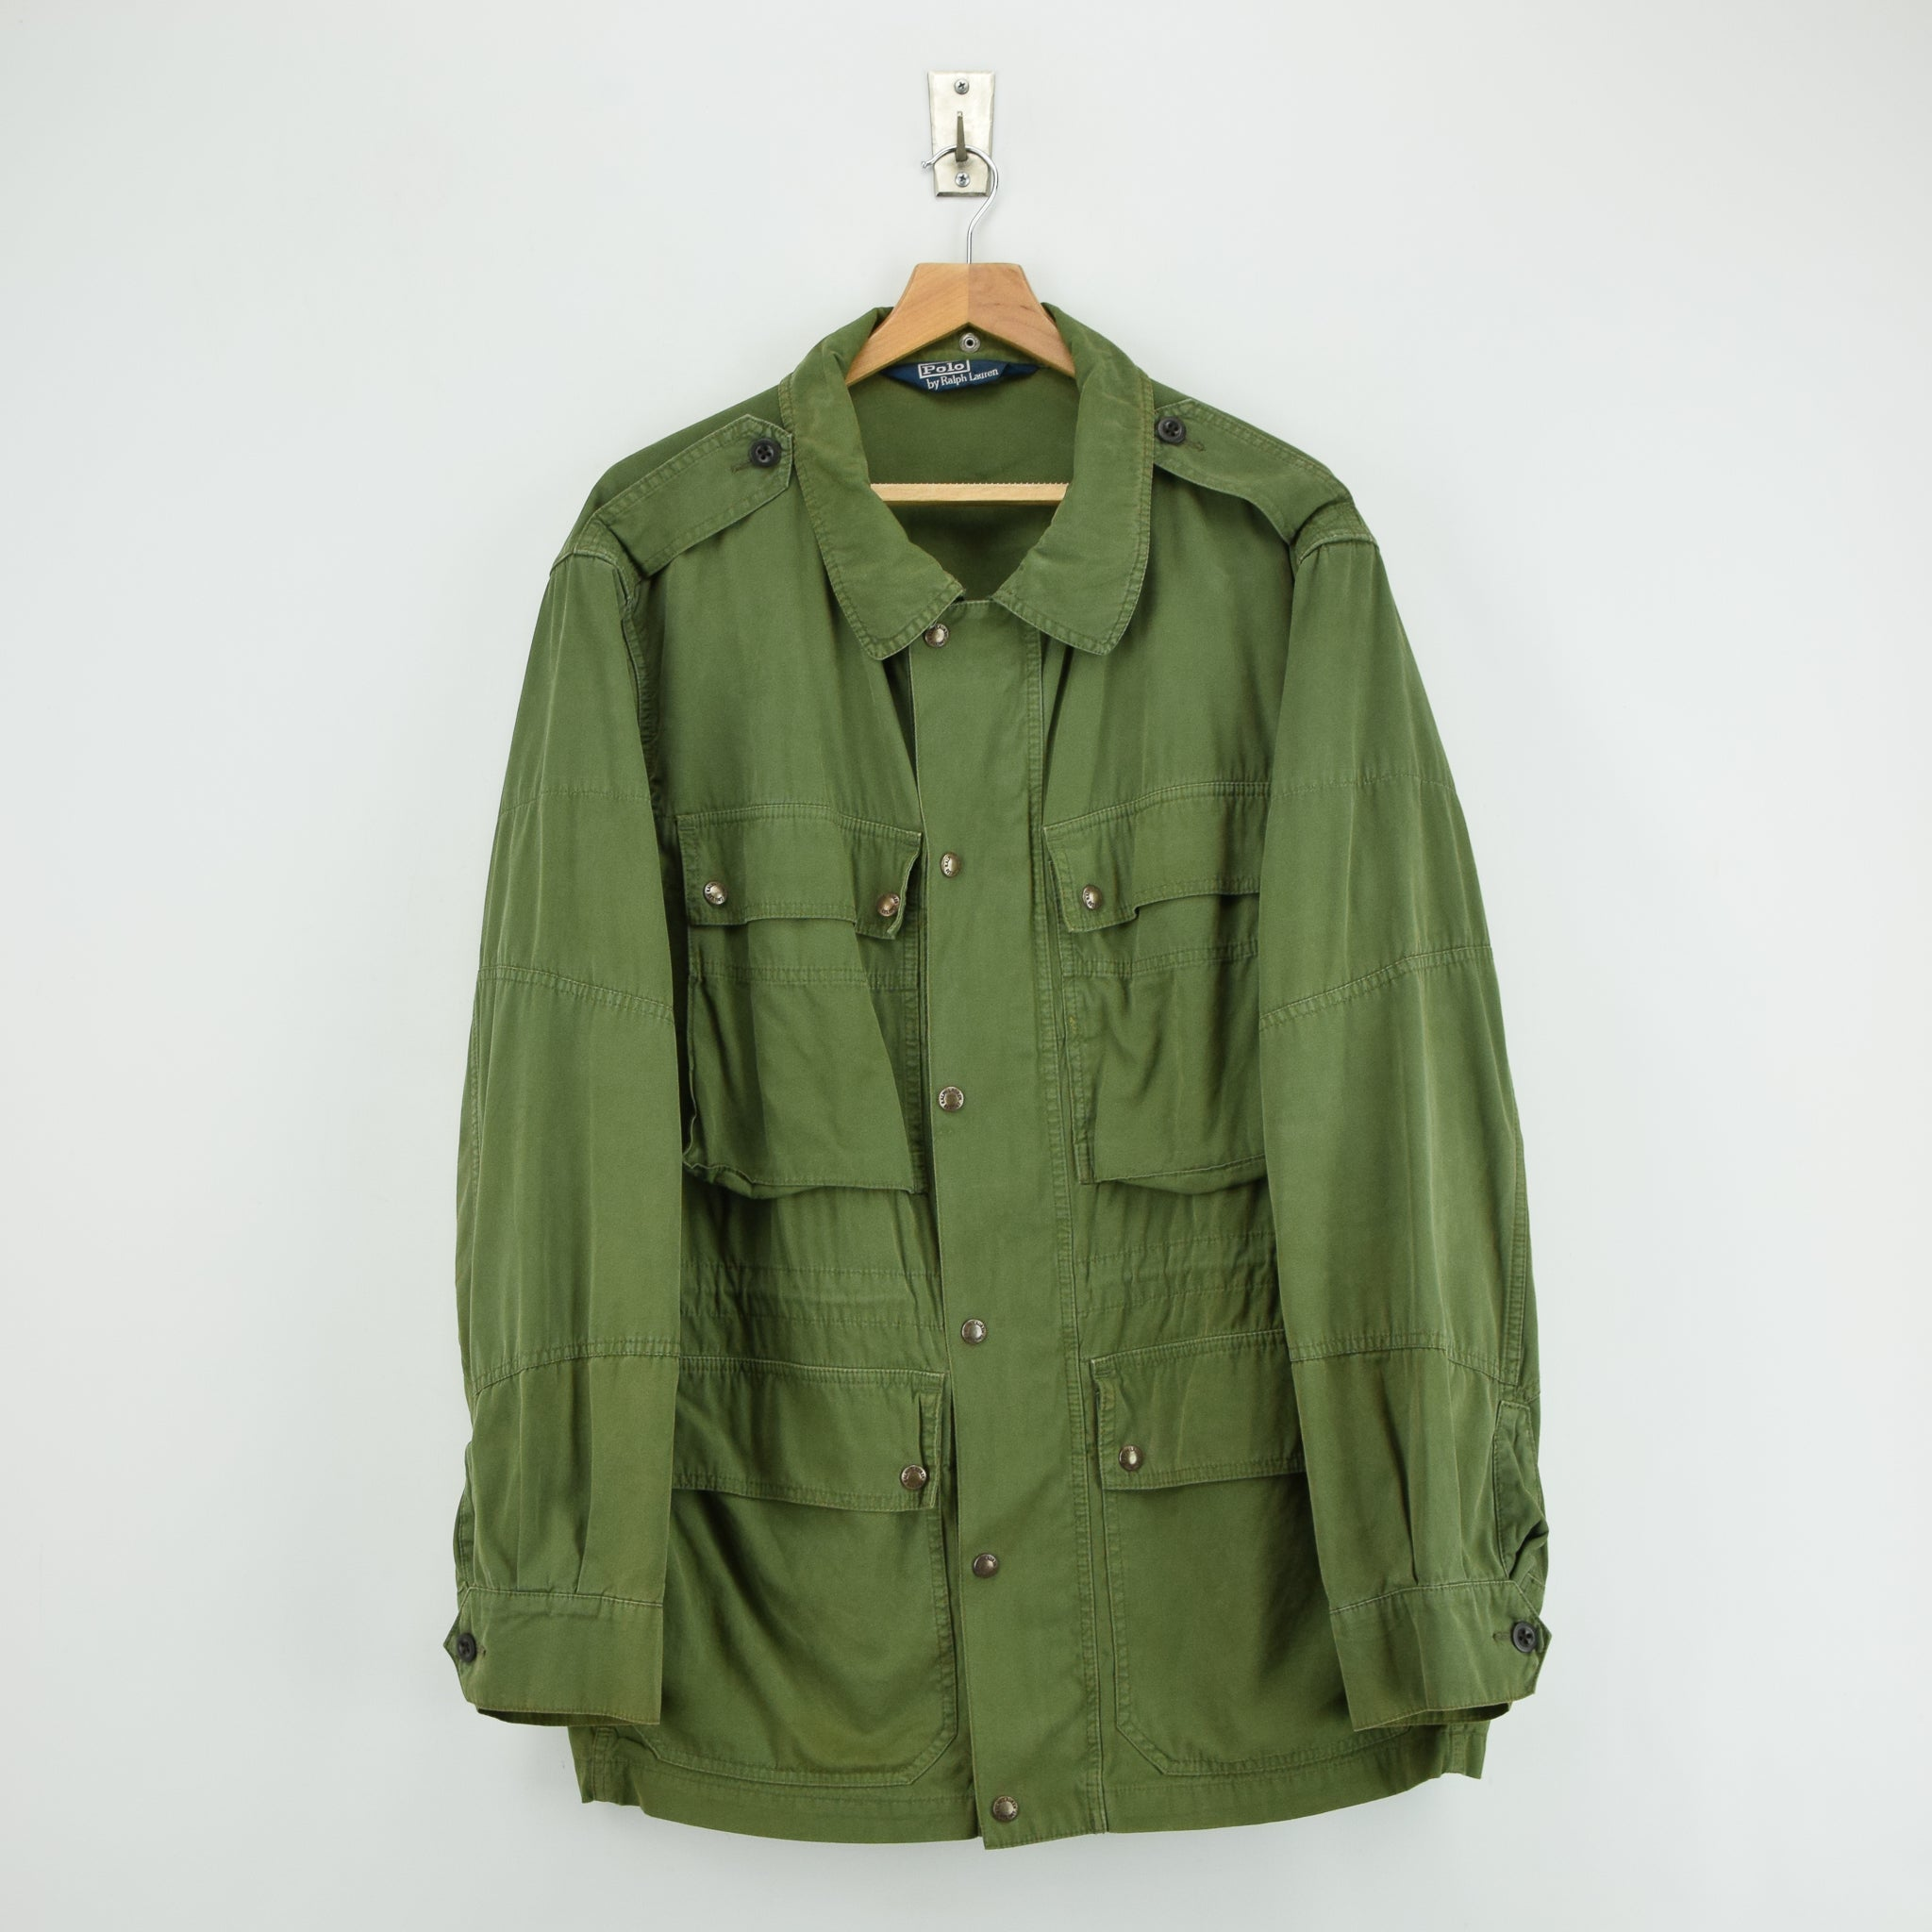 caeea5575 Ralph Lauren Polo Military M-65 Style Coat Jacket Army Green XL